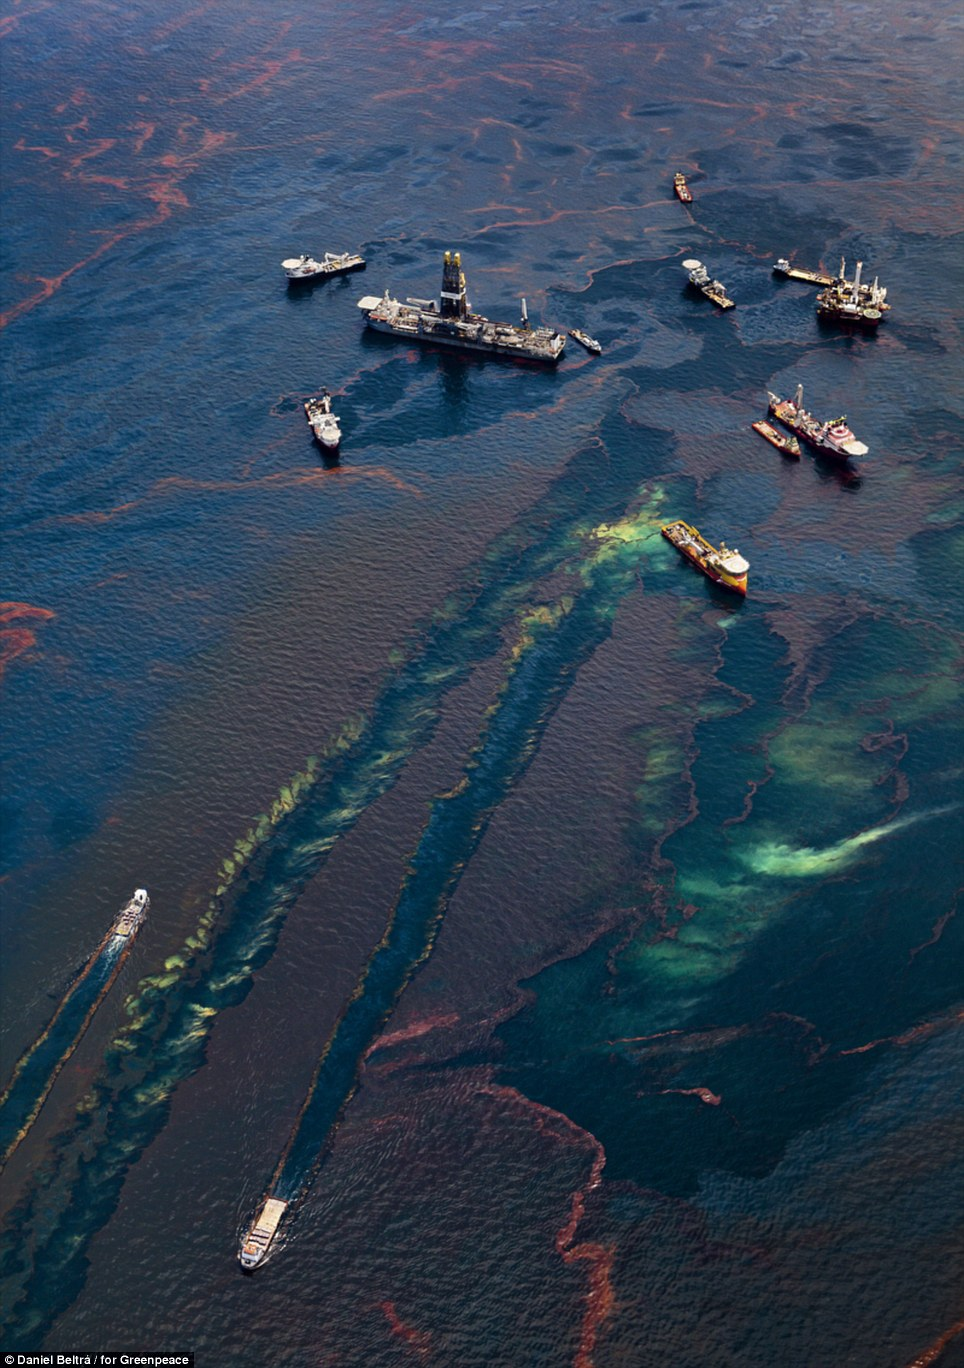 Boats gather near remaining oil platforms near the site of the Deepwater Horizon wellhead, leaving oily wakes as they move through the polluted water. Nearly one third of all U.S. oil production comes from 3,500 such platforms in the Gulf of Mexico